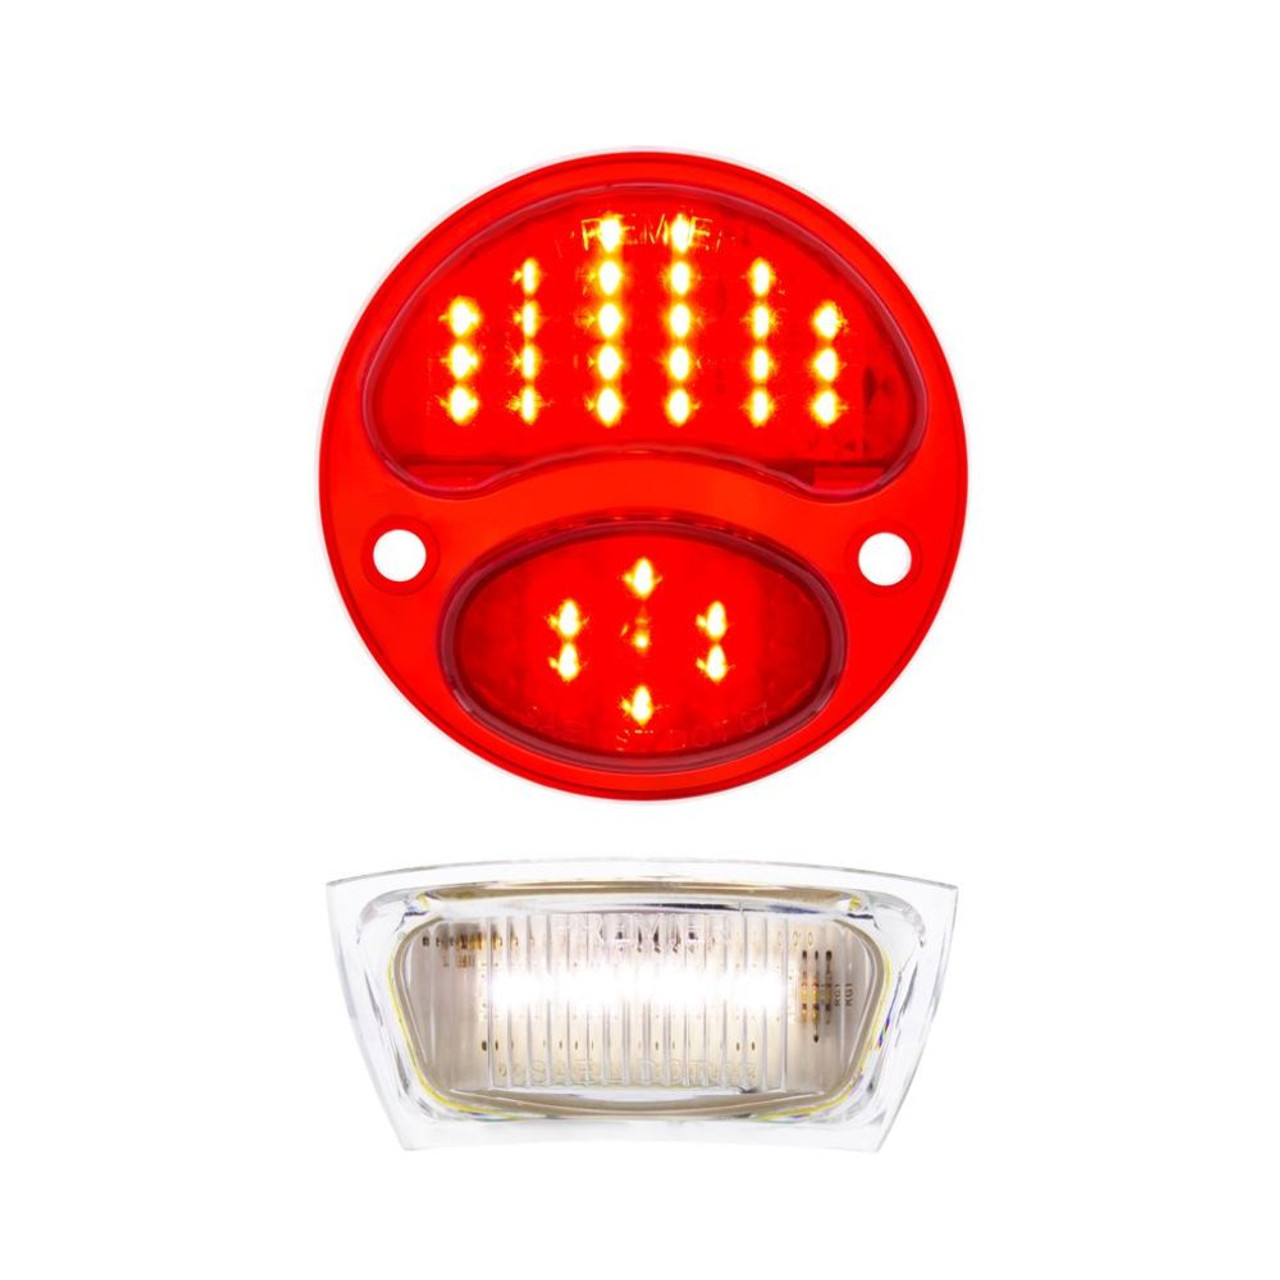 31 LED Red Sequential Tail Light W/LED License Plate Light, For 1928-31 Ford Car